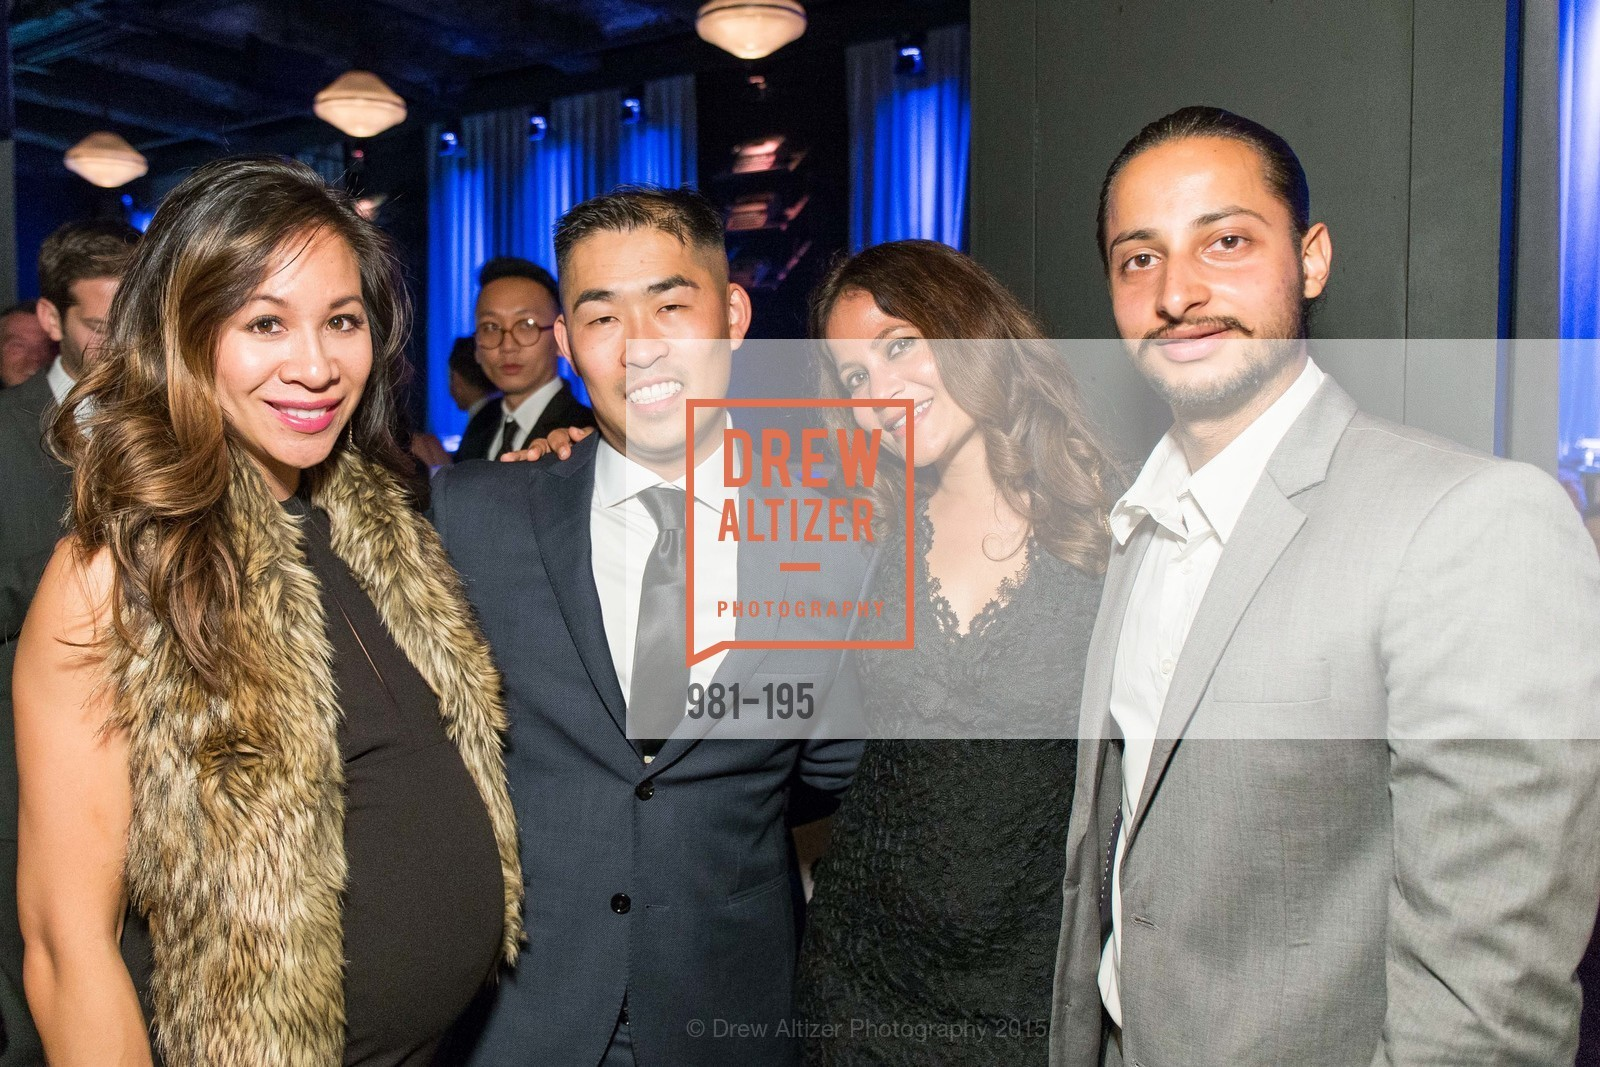 Kenny Truong, Sherry Juneja, Avel Juneja, Climb Real Estate and Sindeo Celebrate the Launch of Million Dollar Listing San Francisco, Local Edition San Francisco. 691 Market St, July 8th, 2015,Drew Altizer, Drew Altizer Photography, full-service agency, private events, San Francisco photographer, photographer california